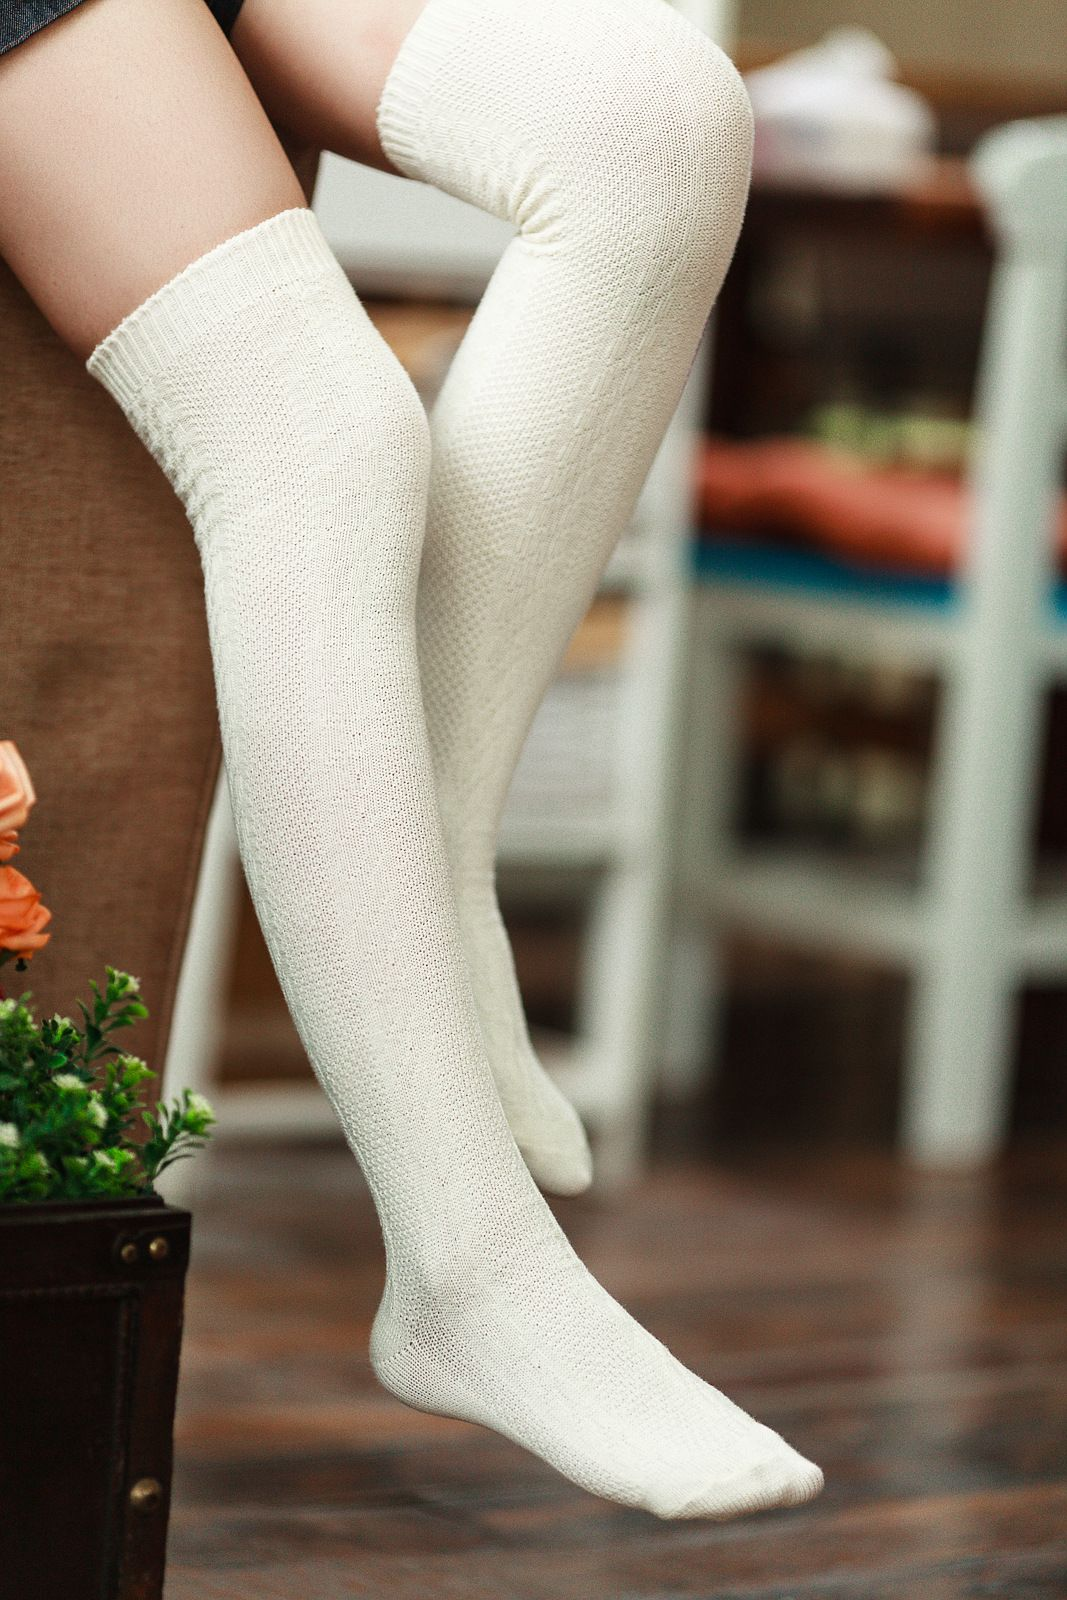 b87ac0394da IVORY CABLE KNITTED THIGH HIGH BOOT SOCK Give your legs the perfect touch  of girly flair